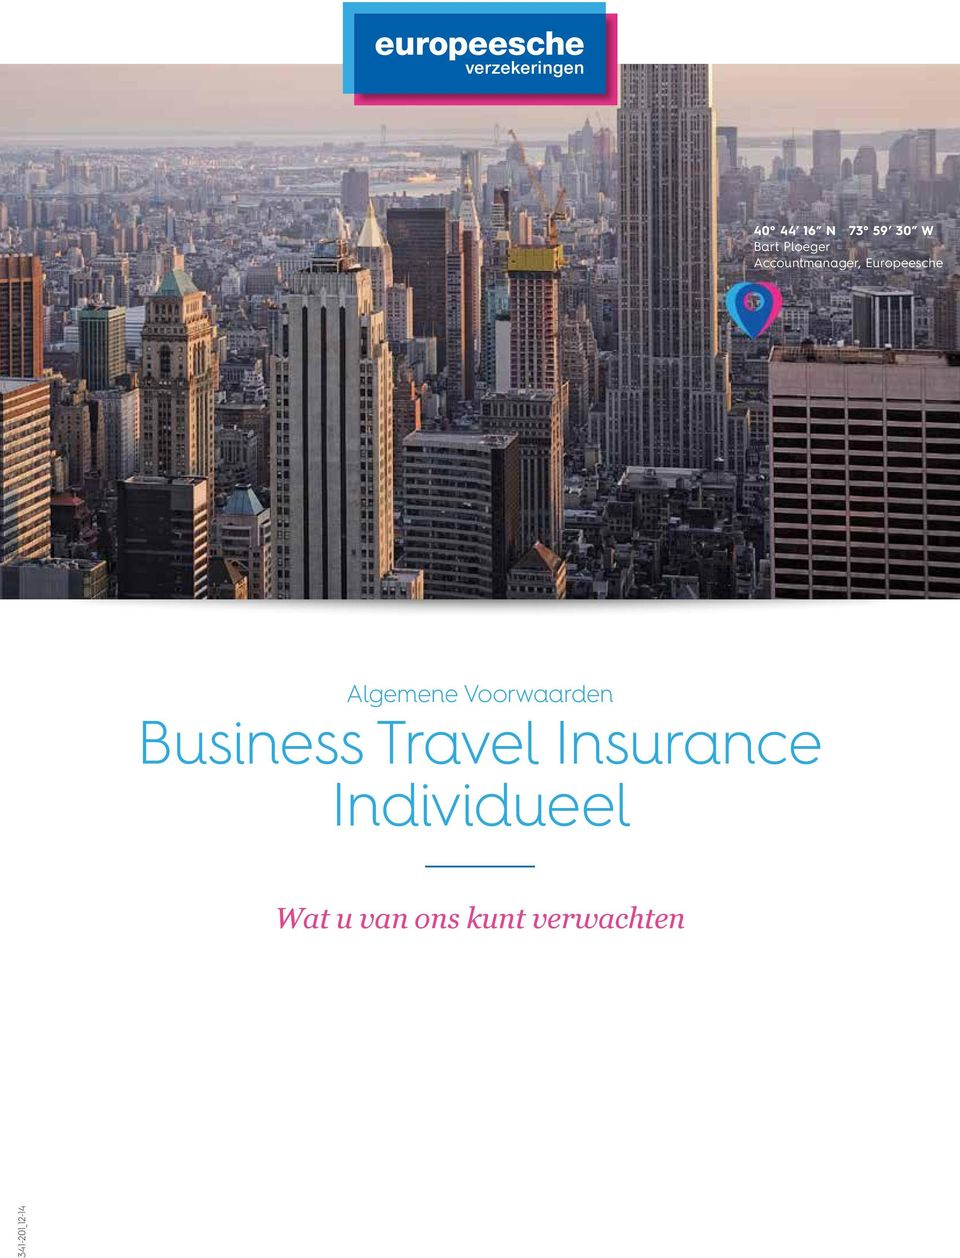 Voorwaarden Business Travel Insurance